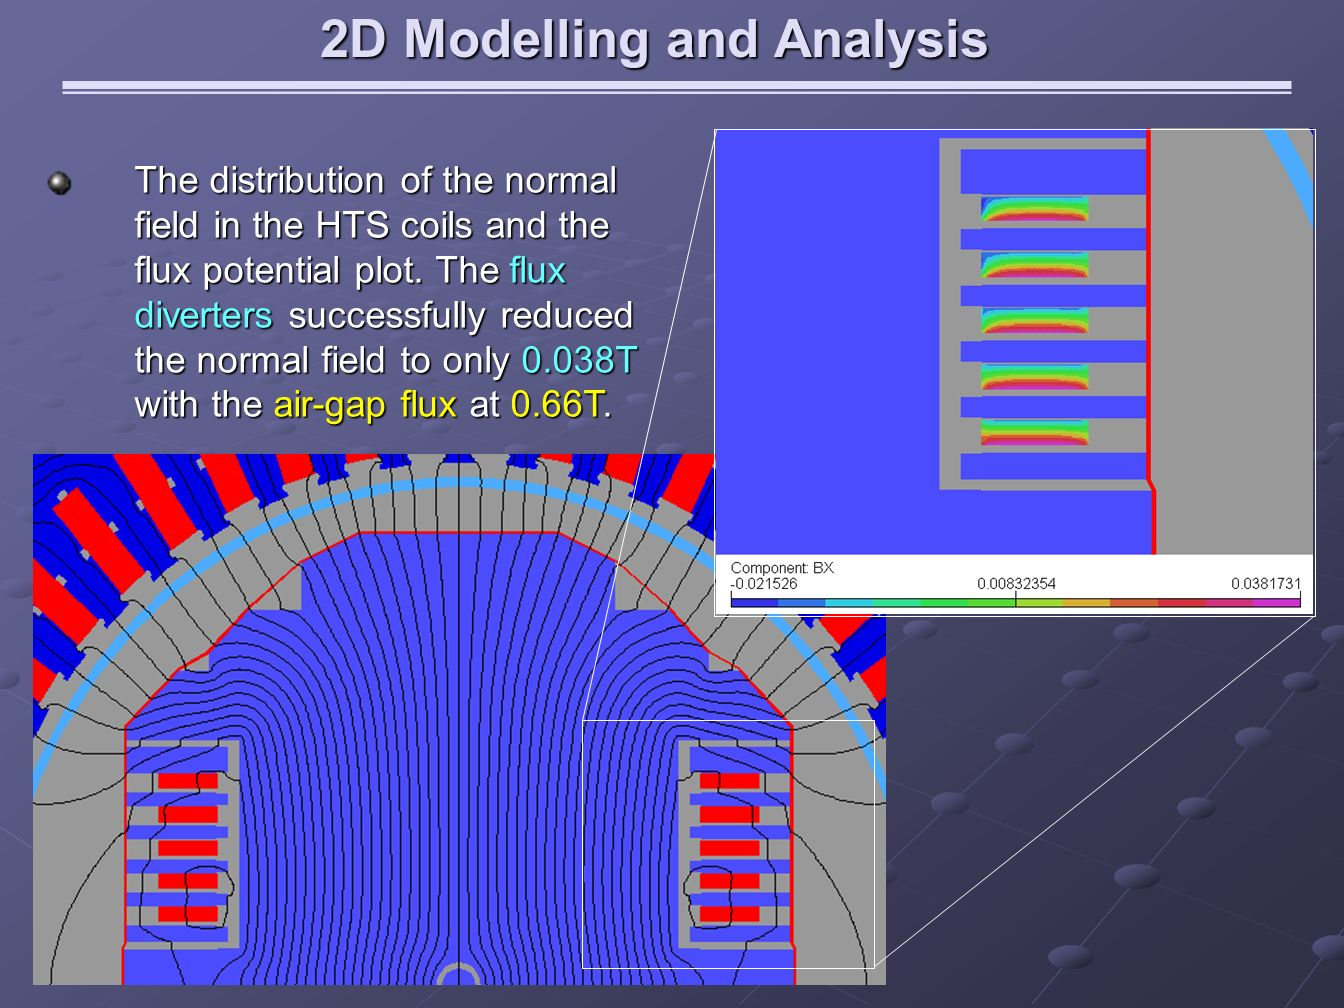 2D Modelling and Analysis